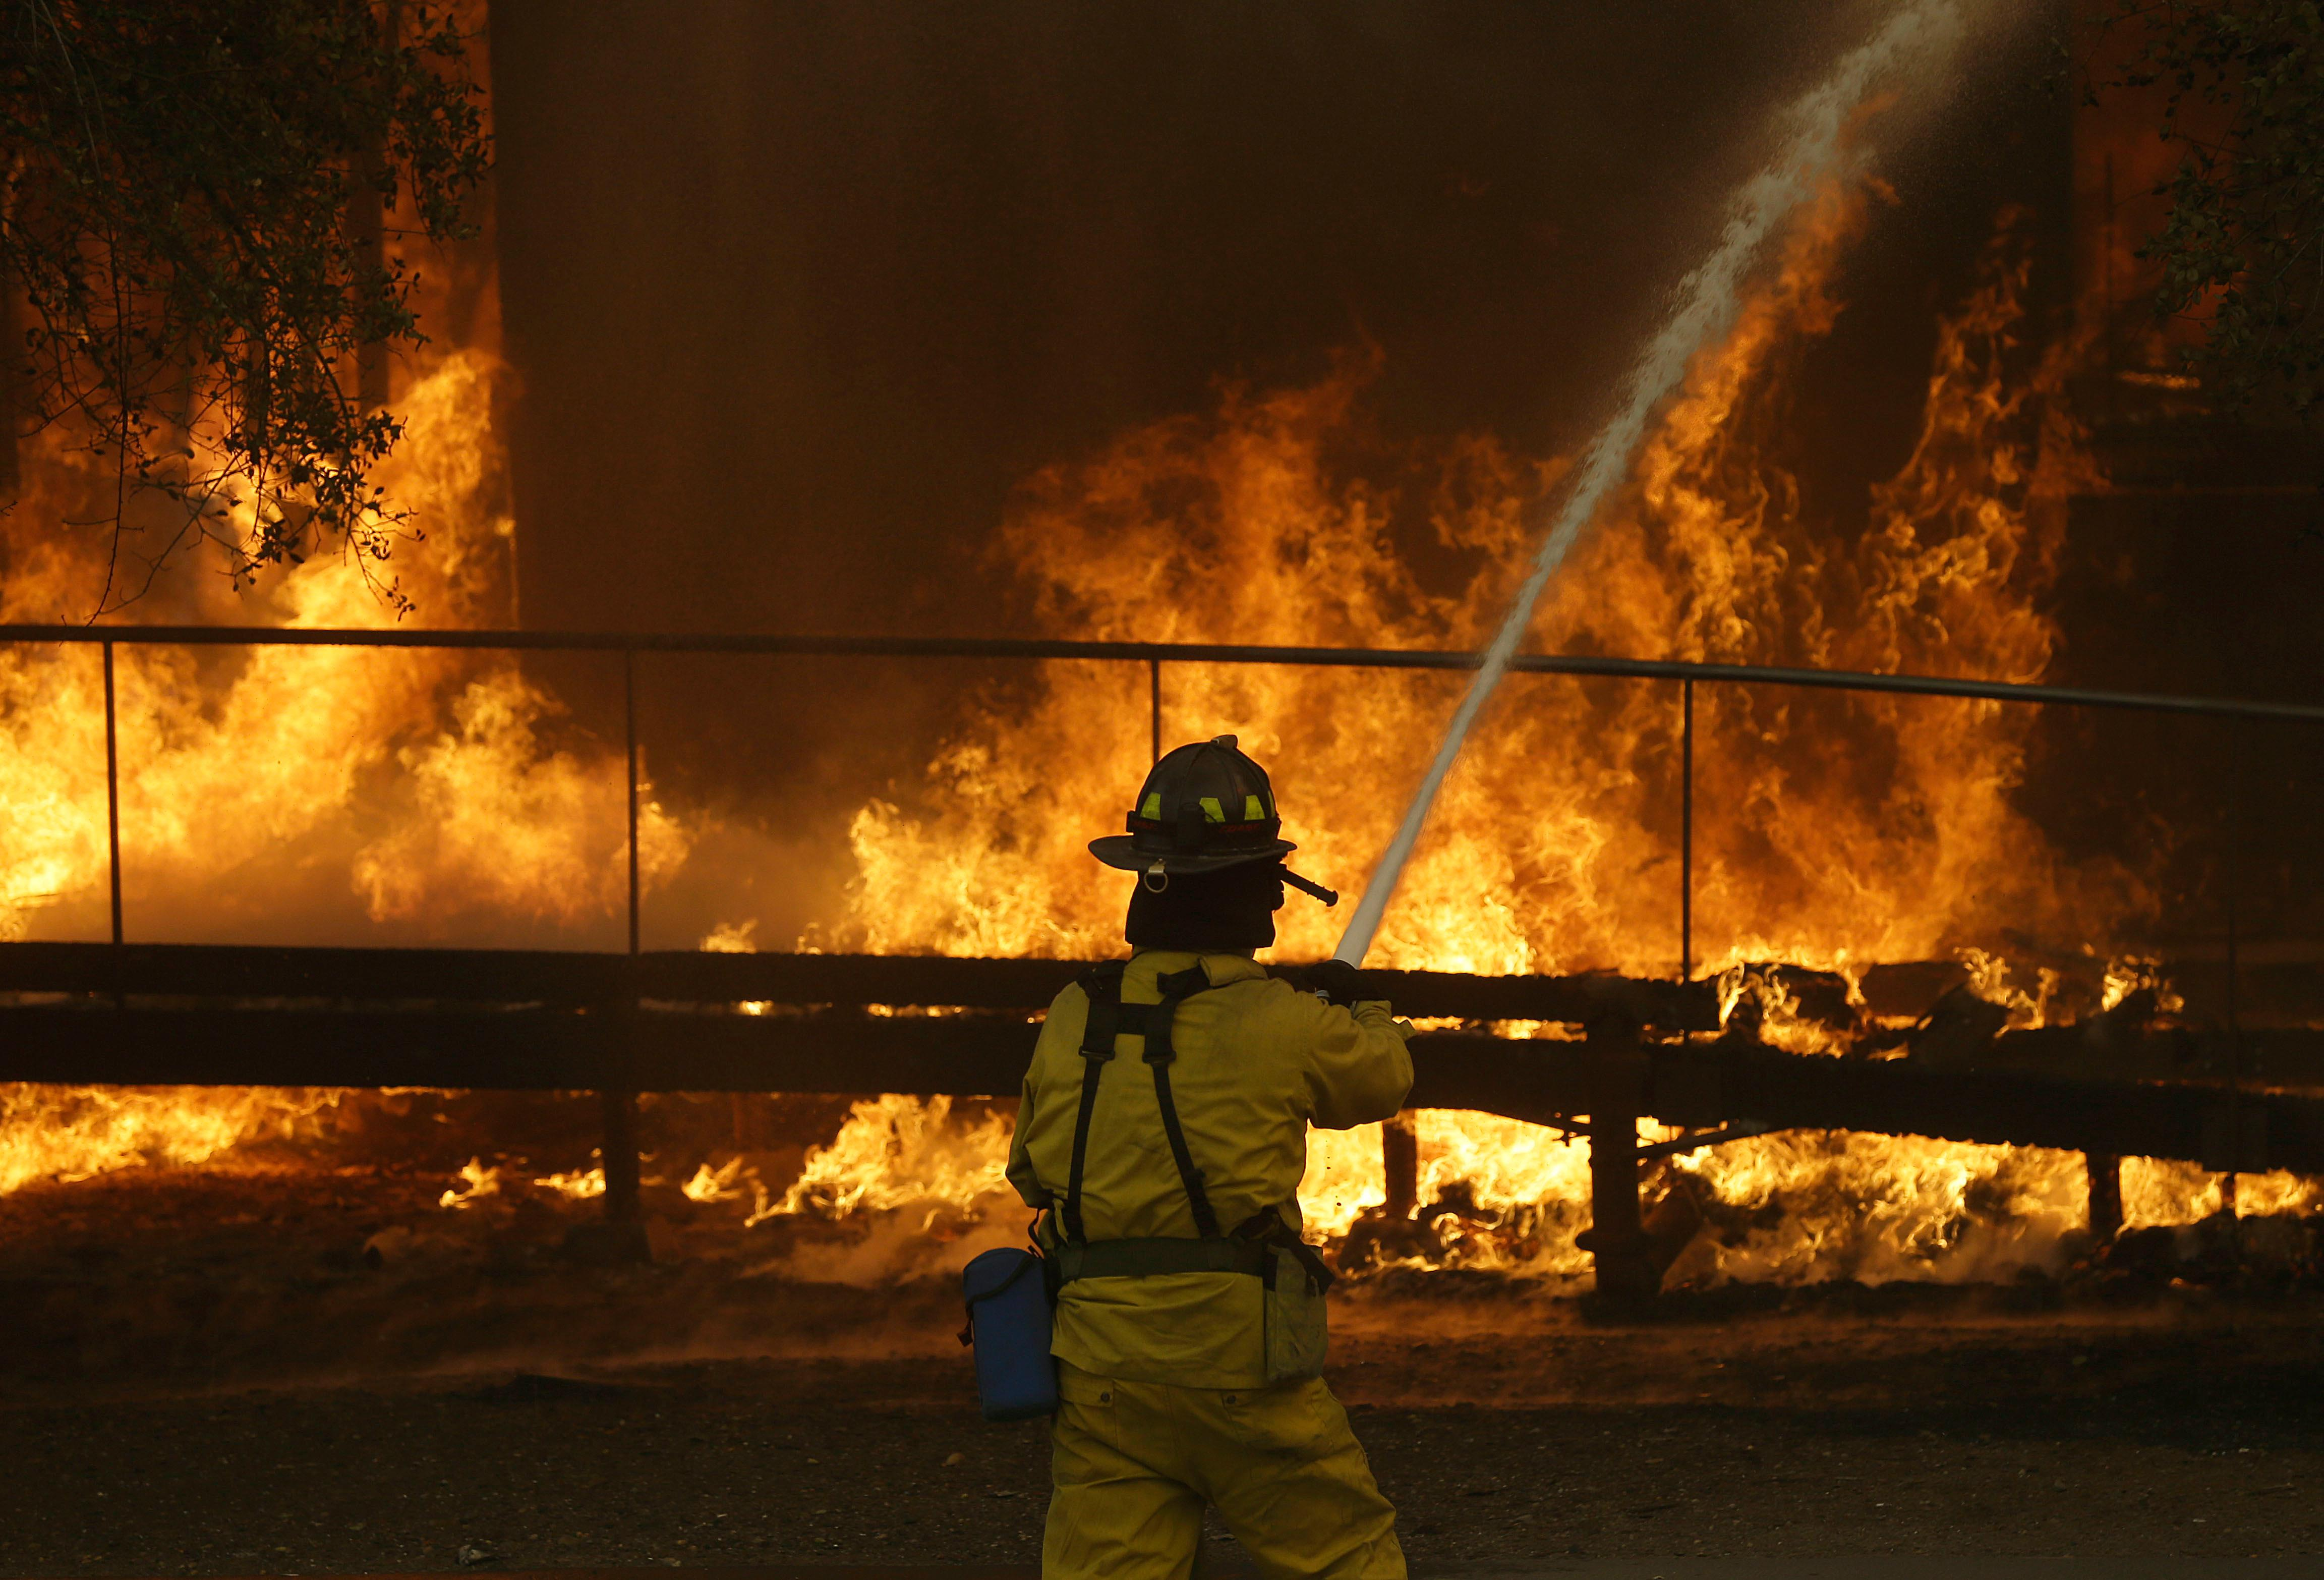 FILE - In this Oct. 9, 2017 file photo, a firefighter sprays a hose into a Keysight Technologies building in Santa Rosa, Calif. The Santa Rosa Press Democrat reported that more than 100 boxes of letters and other materials from tech pioneers William Hewlett and David Packard burned in the fires. Electronics firm Keysight Technologies had acquired the archives through spinoffs, and the archives were stored at its offices in Santa Rosa. (AP Photo/Jeff Chiu, file)